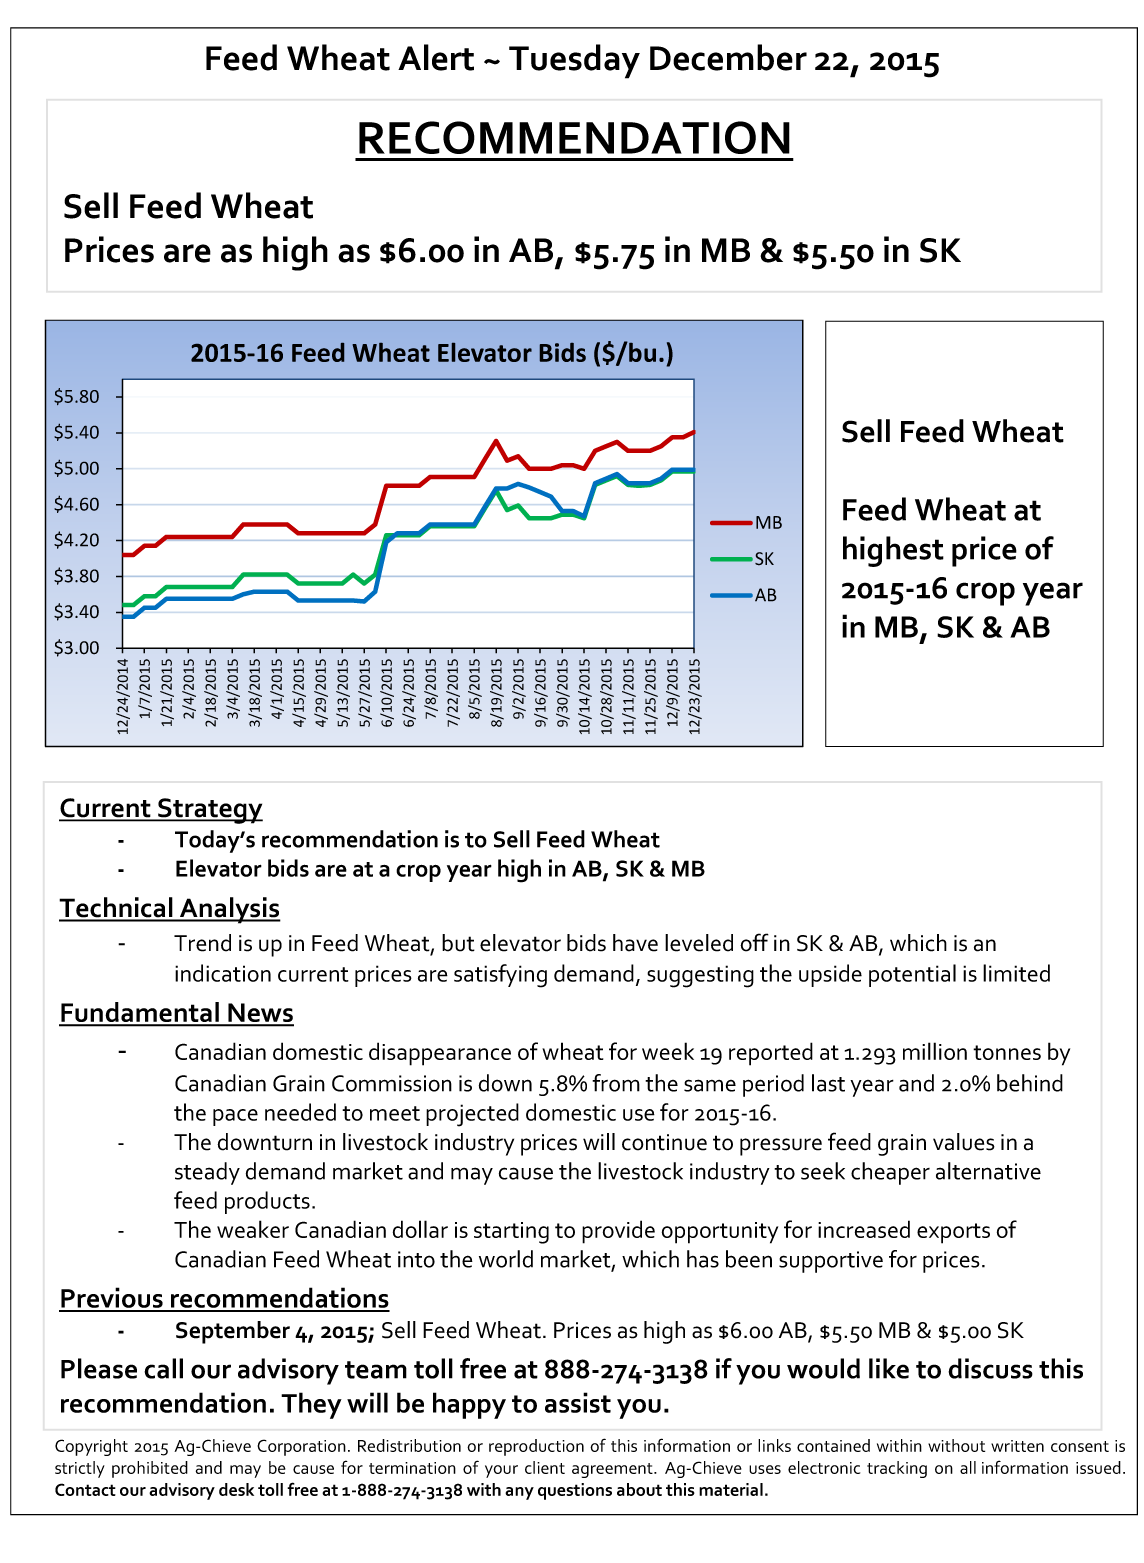 Field Wheat Alert Sell Recommendation